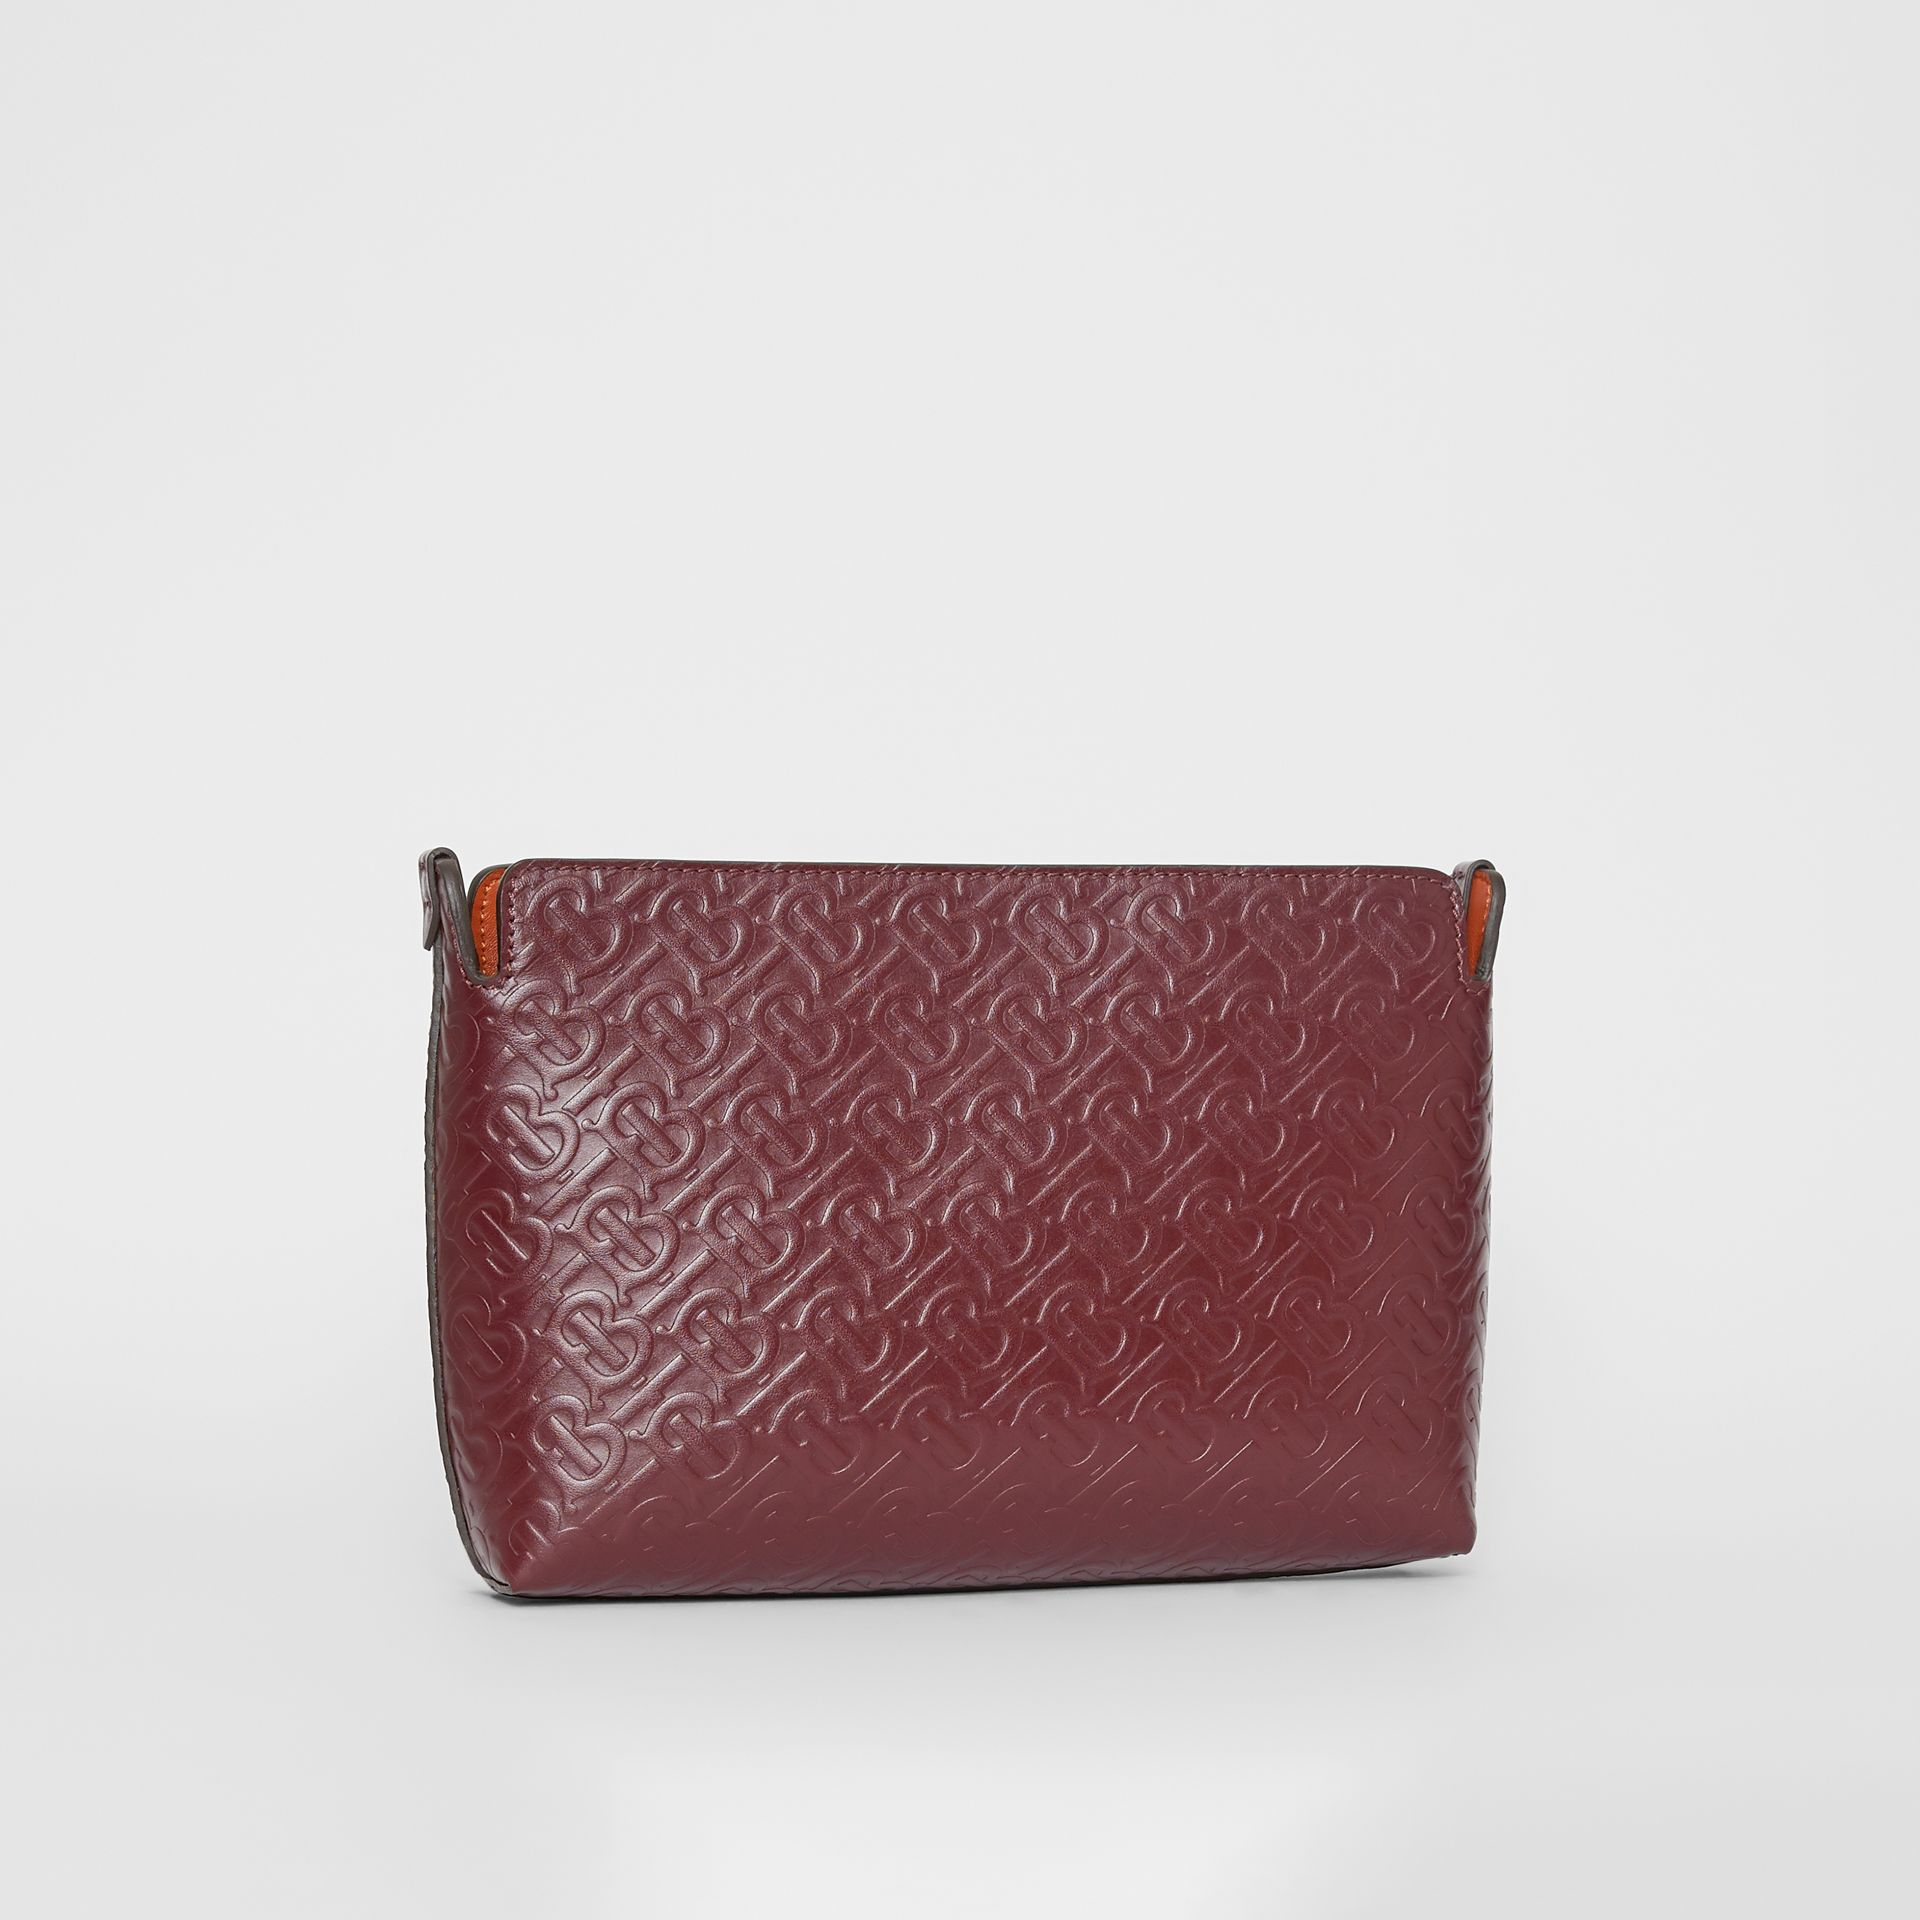 Medium Monogram Leather Clutch in Oxblood - Women | Burberry United Kingdom - gallery image 3